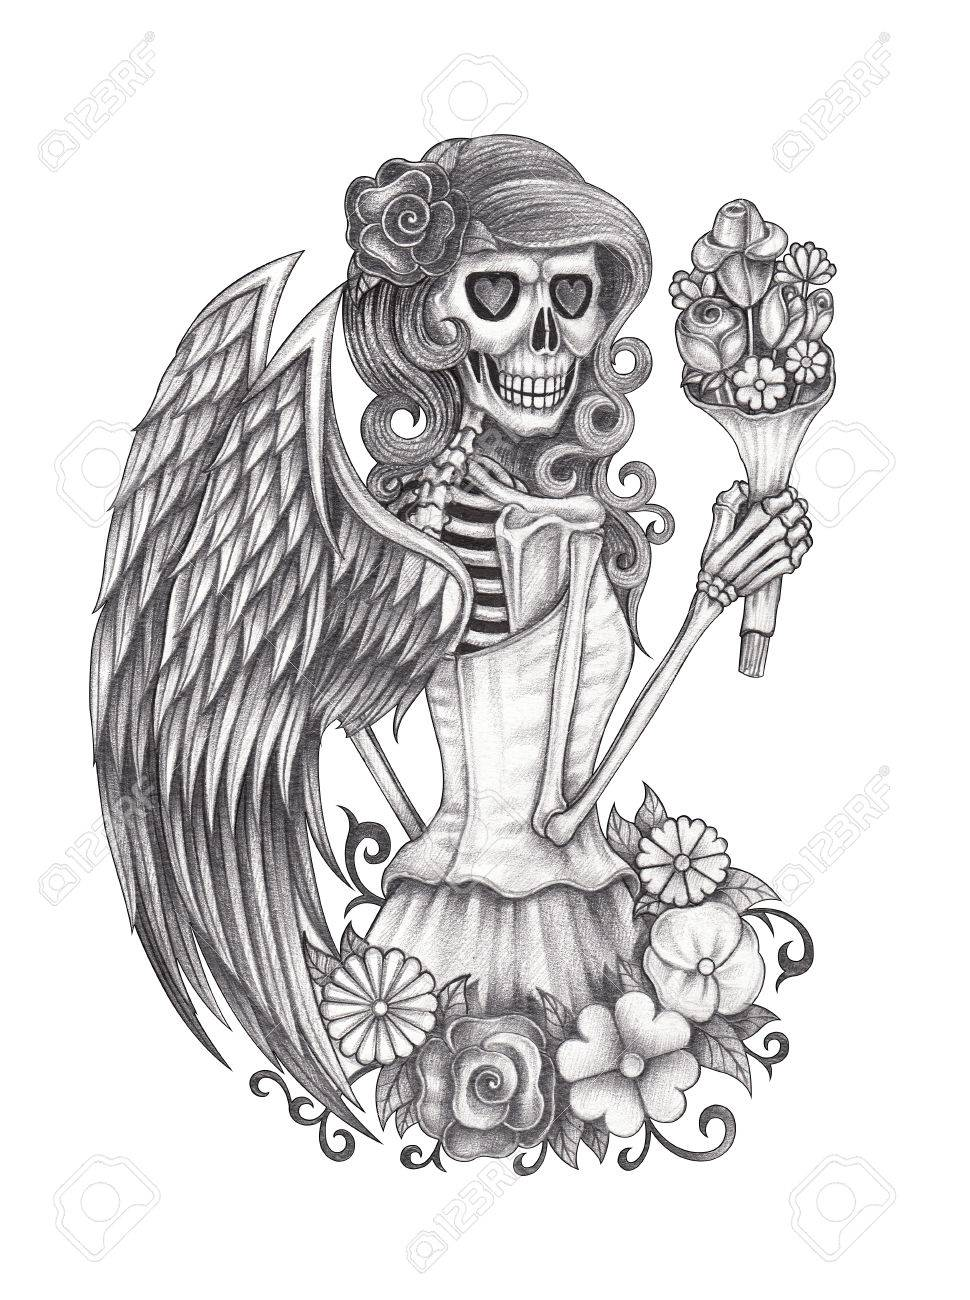 Skull Angel Hand Pencil Drawing On Paper Stock Photo Picture And